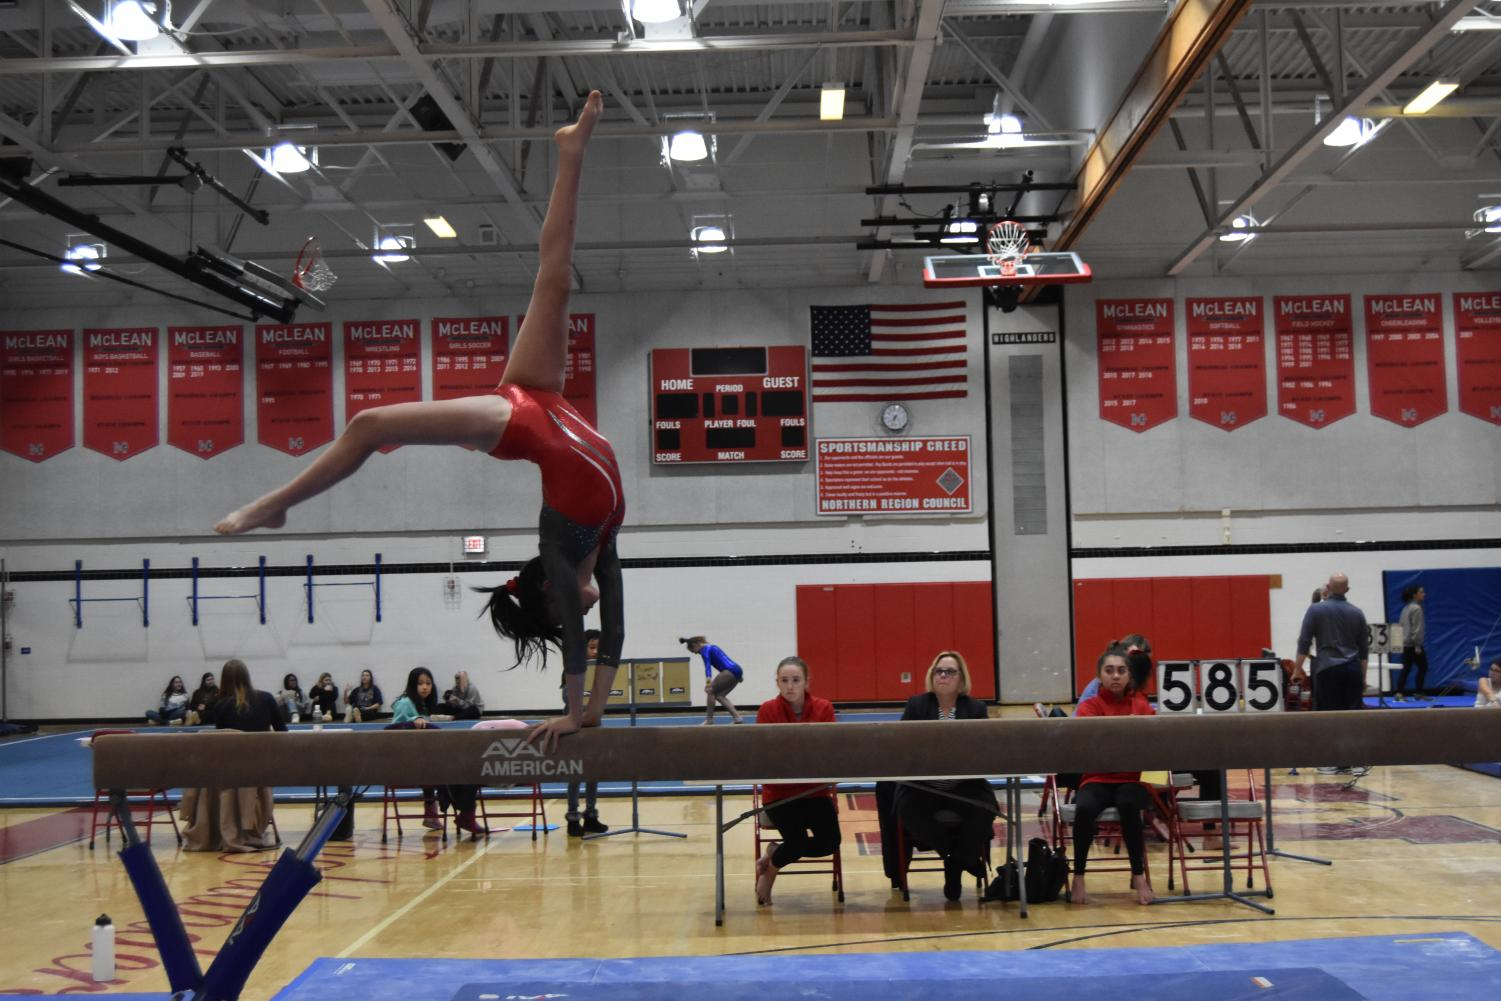 TUMBLING TARA—Senior team captain Tara Stewart competes on the balance beam at the home meet on Dec. 2. She has been practicing gymnastics for 14 years.